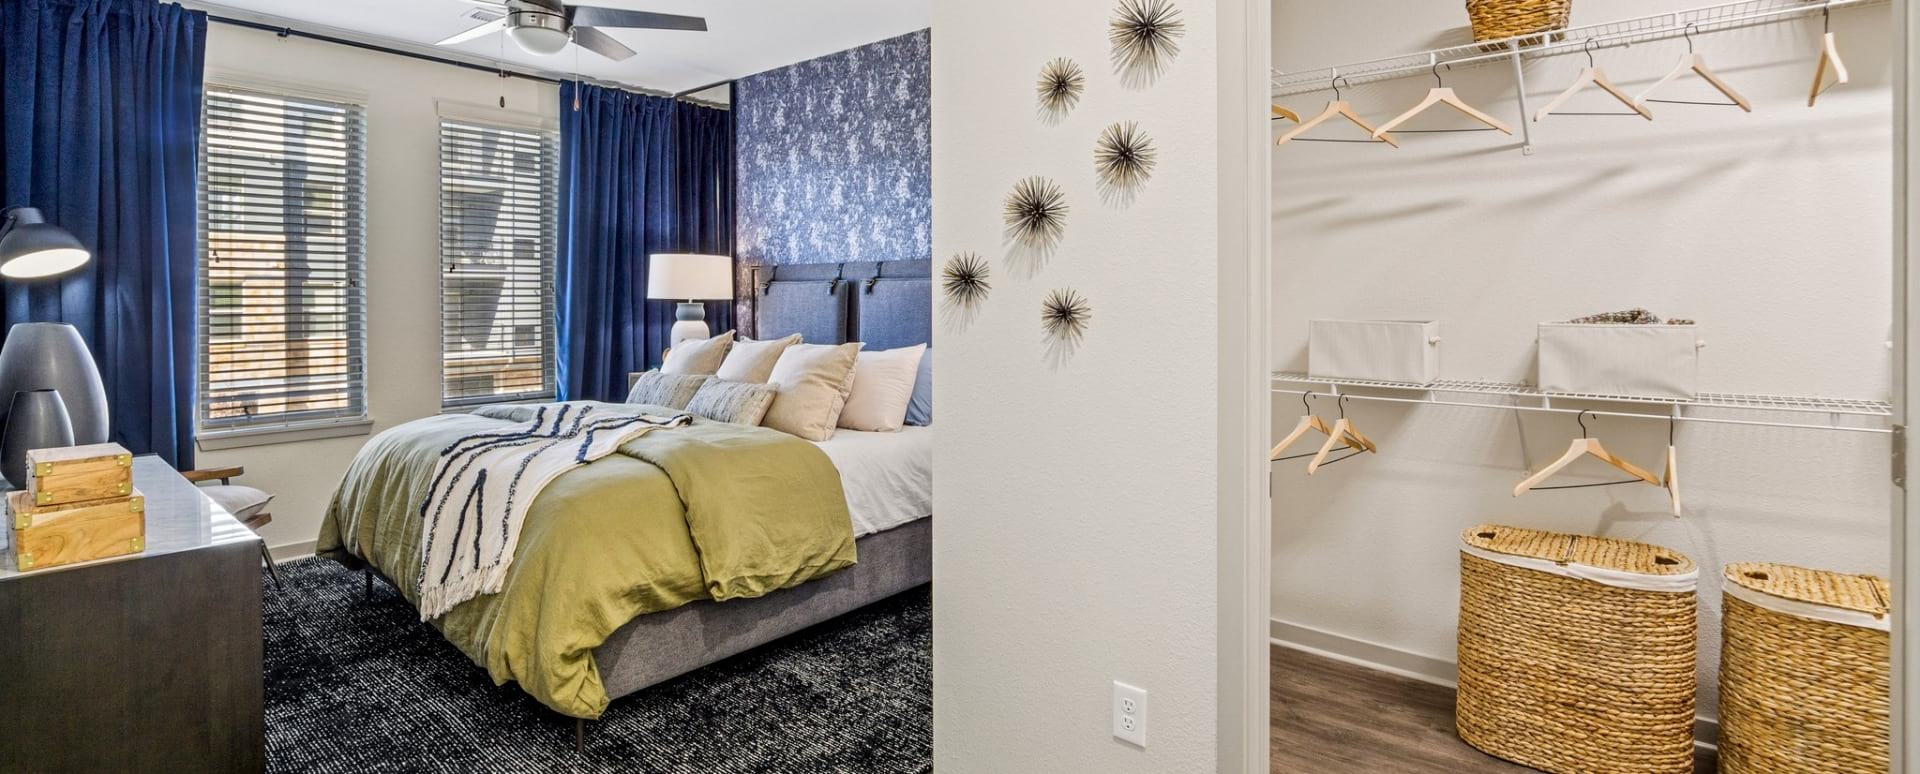 Come Home to Cortland Flatirons Apartments in Broomfield, CO!